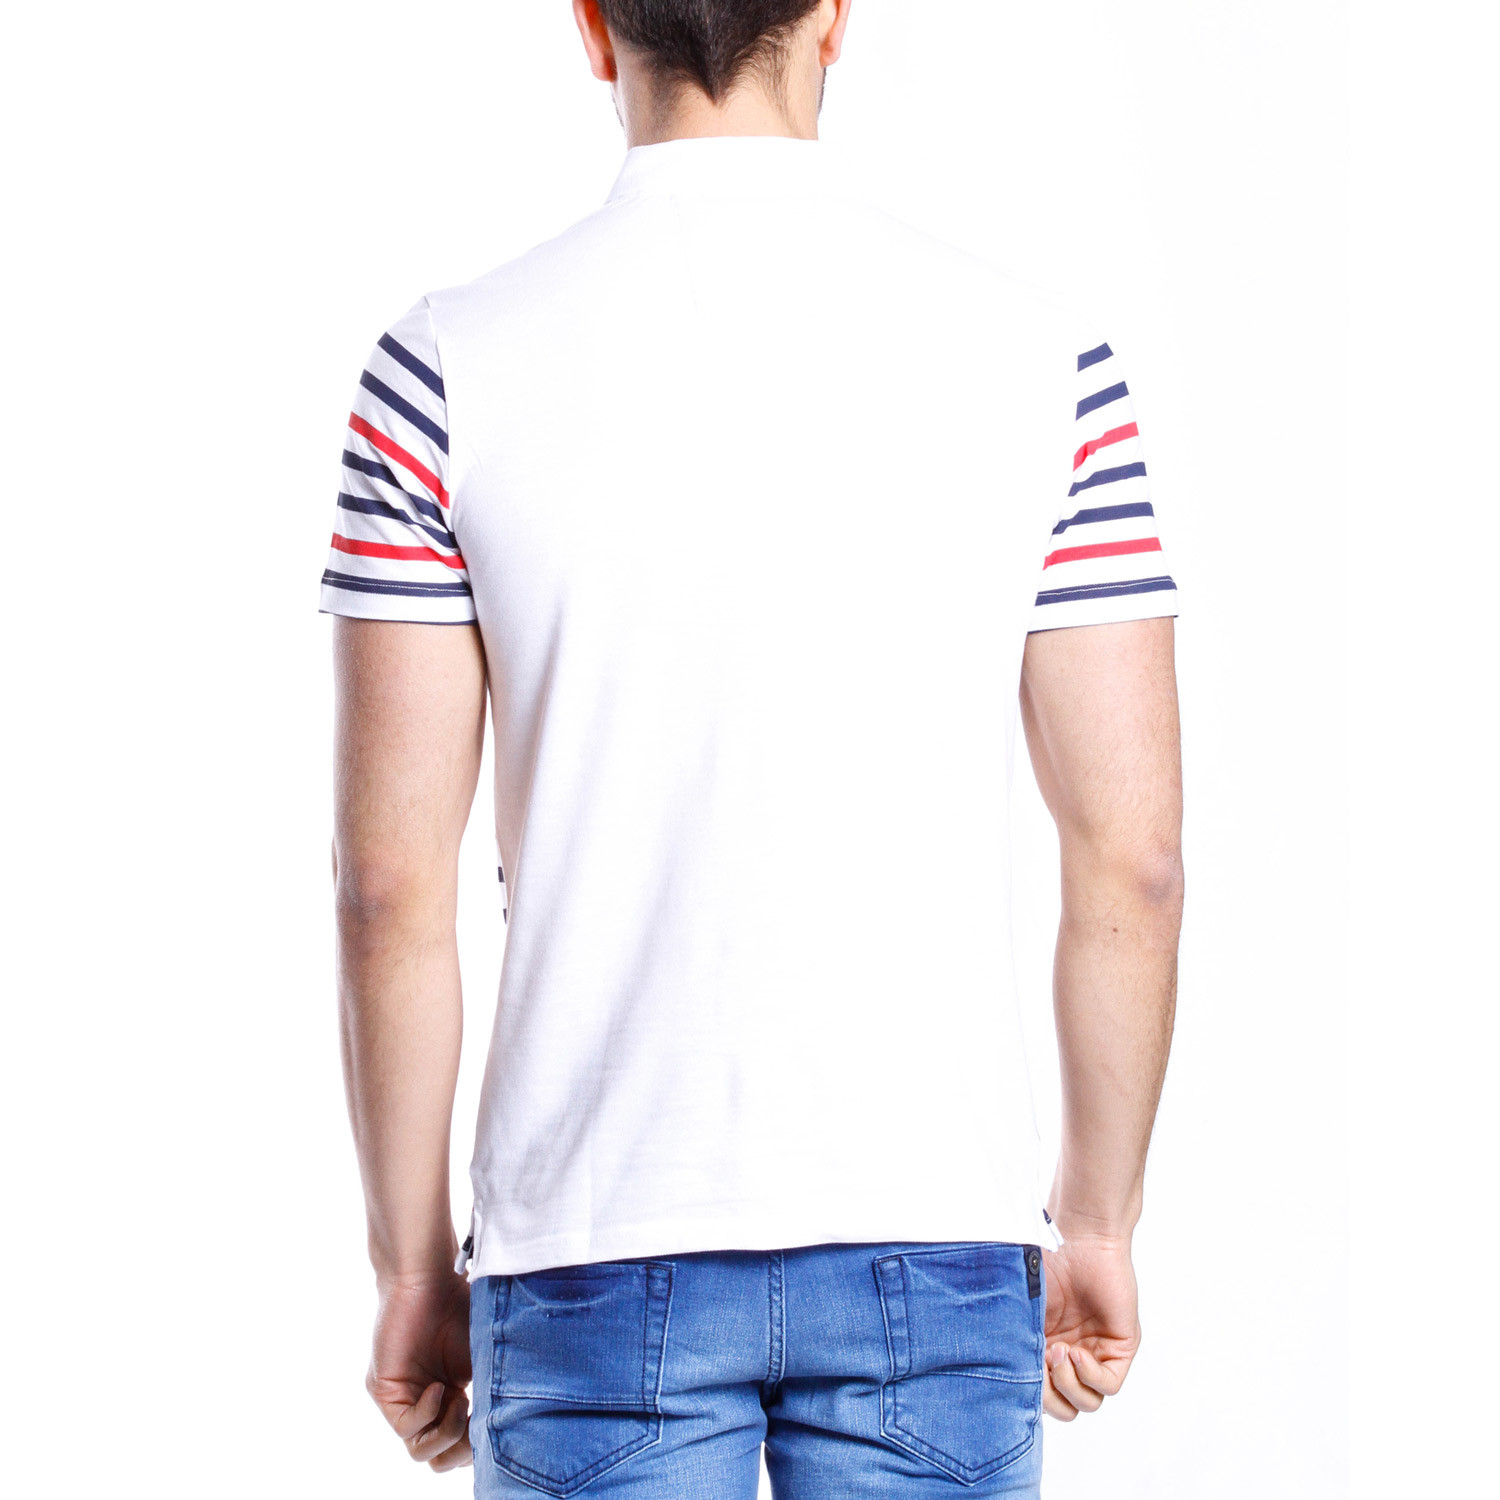 Floral striped polo shirt white red blue s moda for Red blue striped shirt